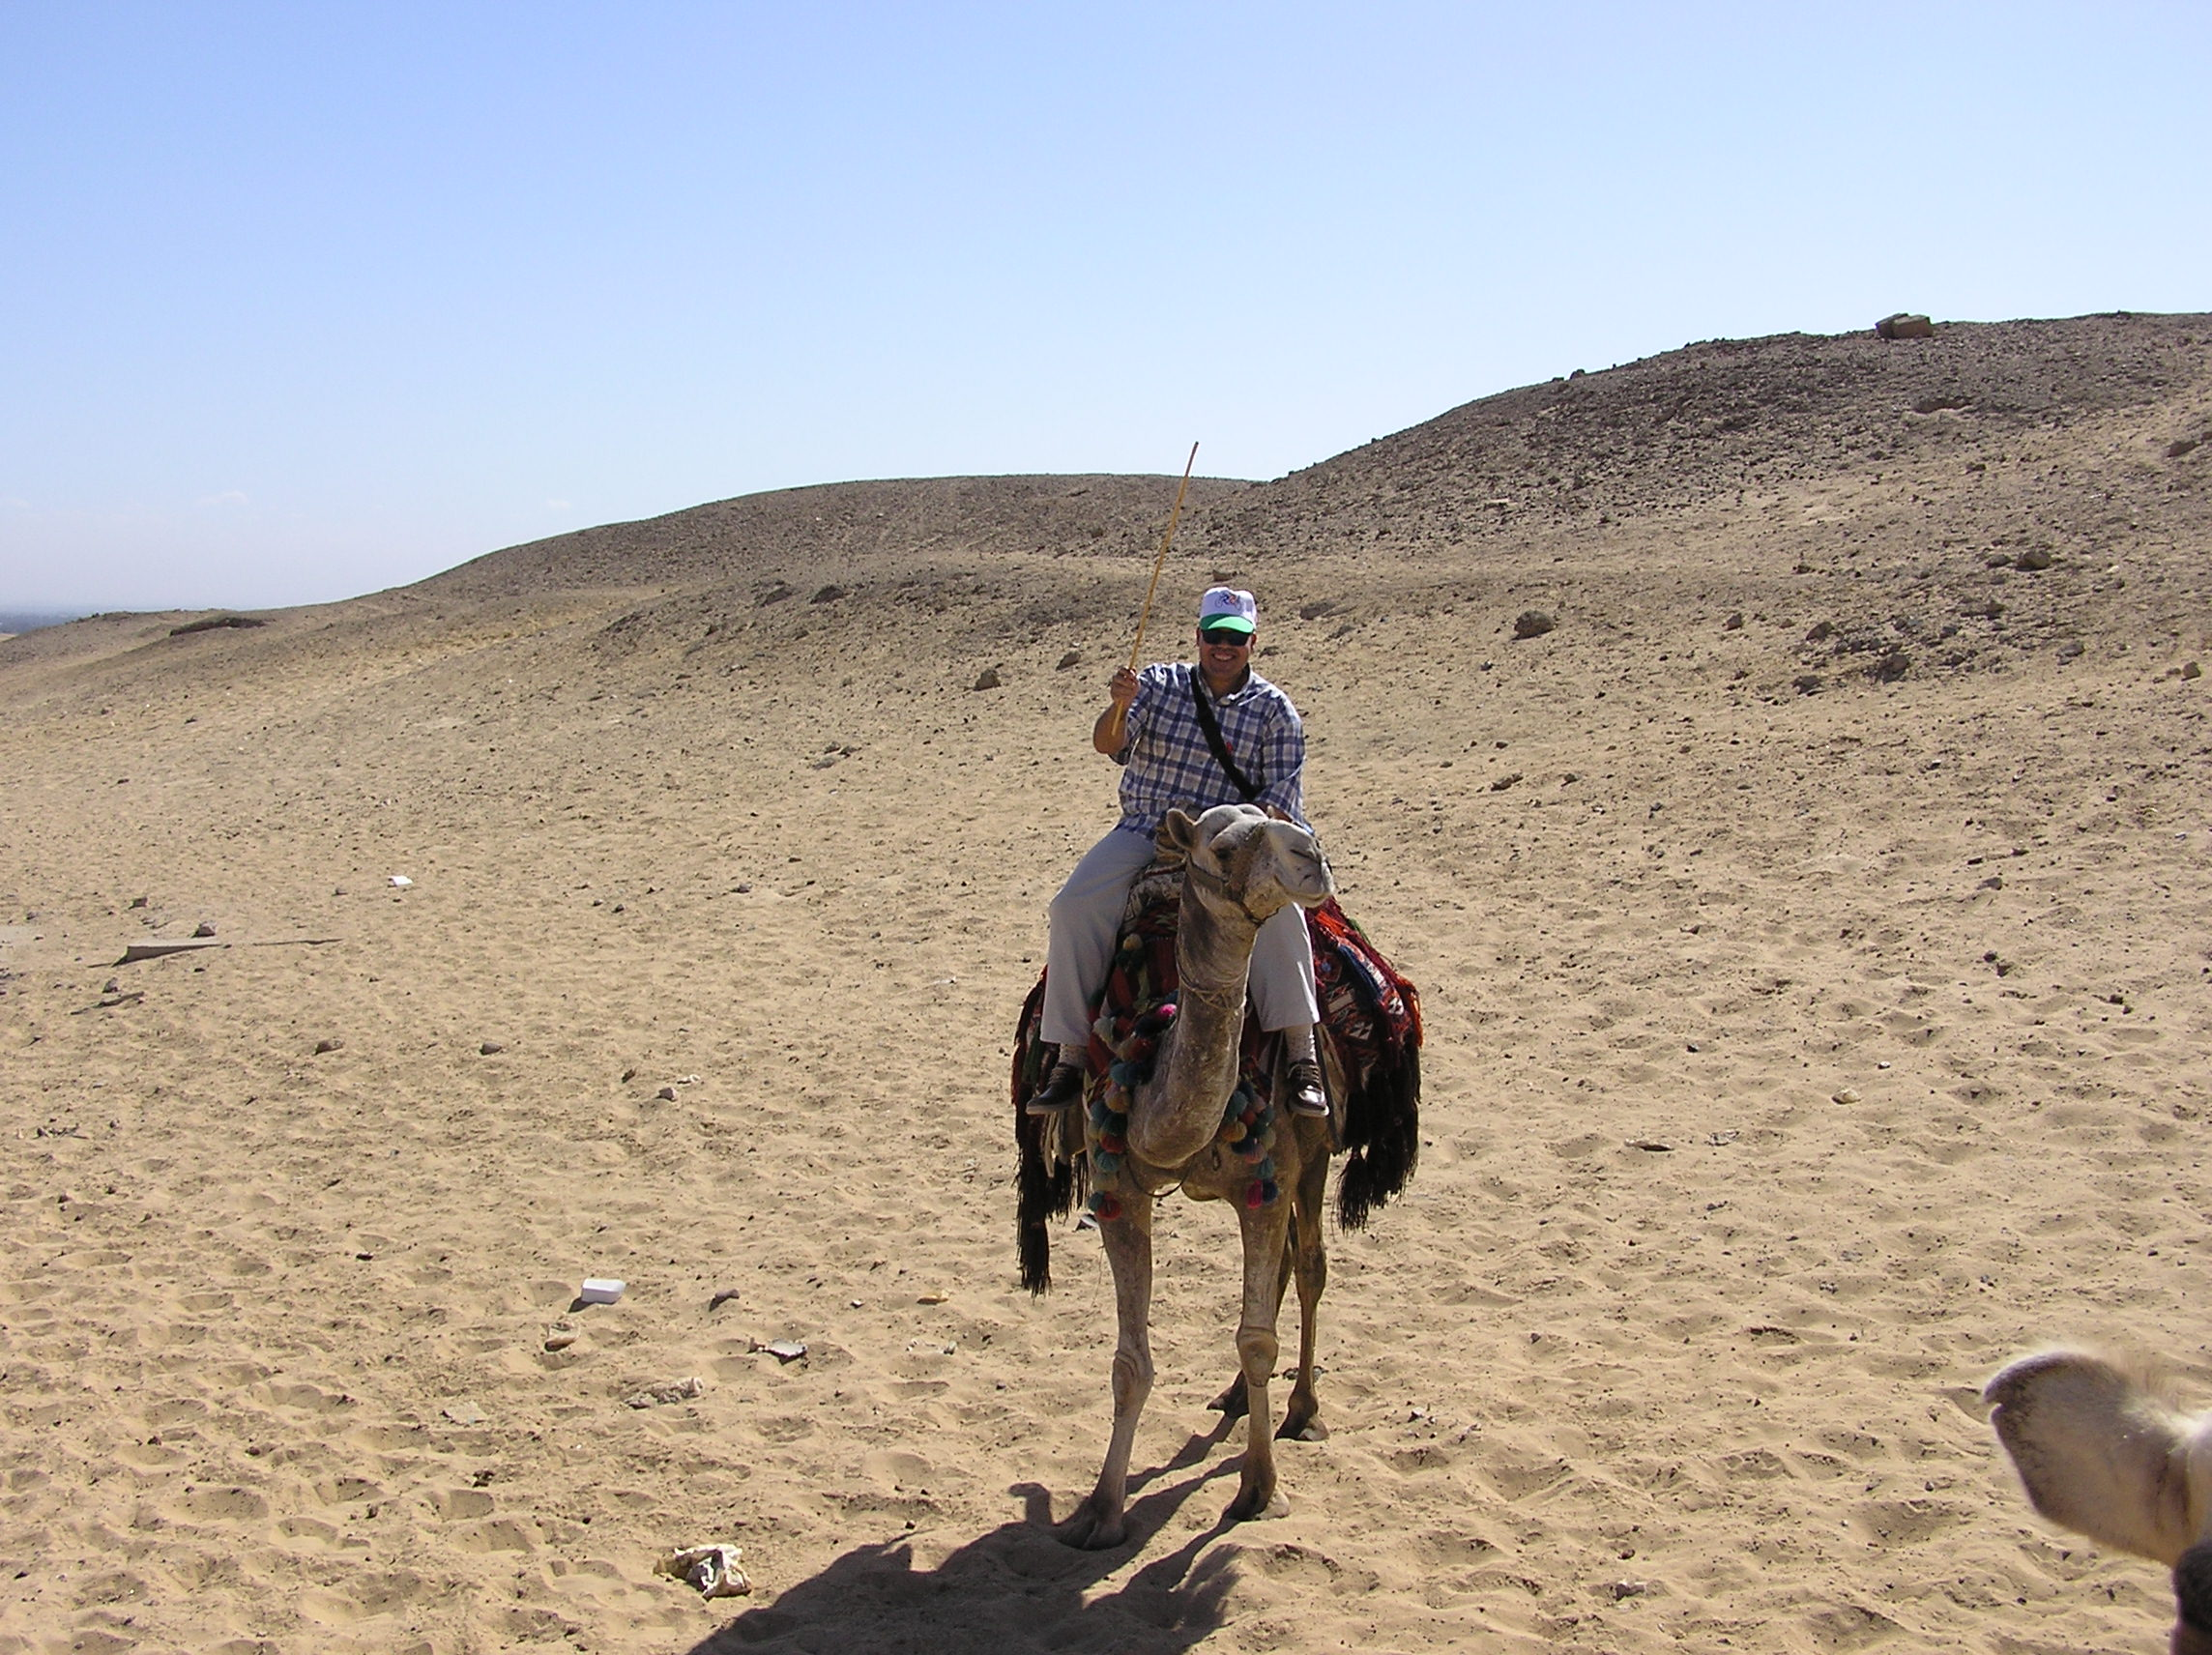 Khaled on camel